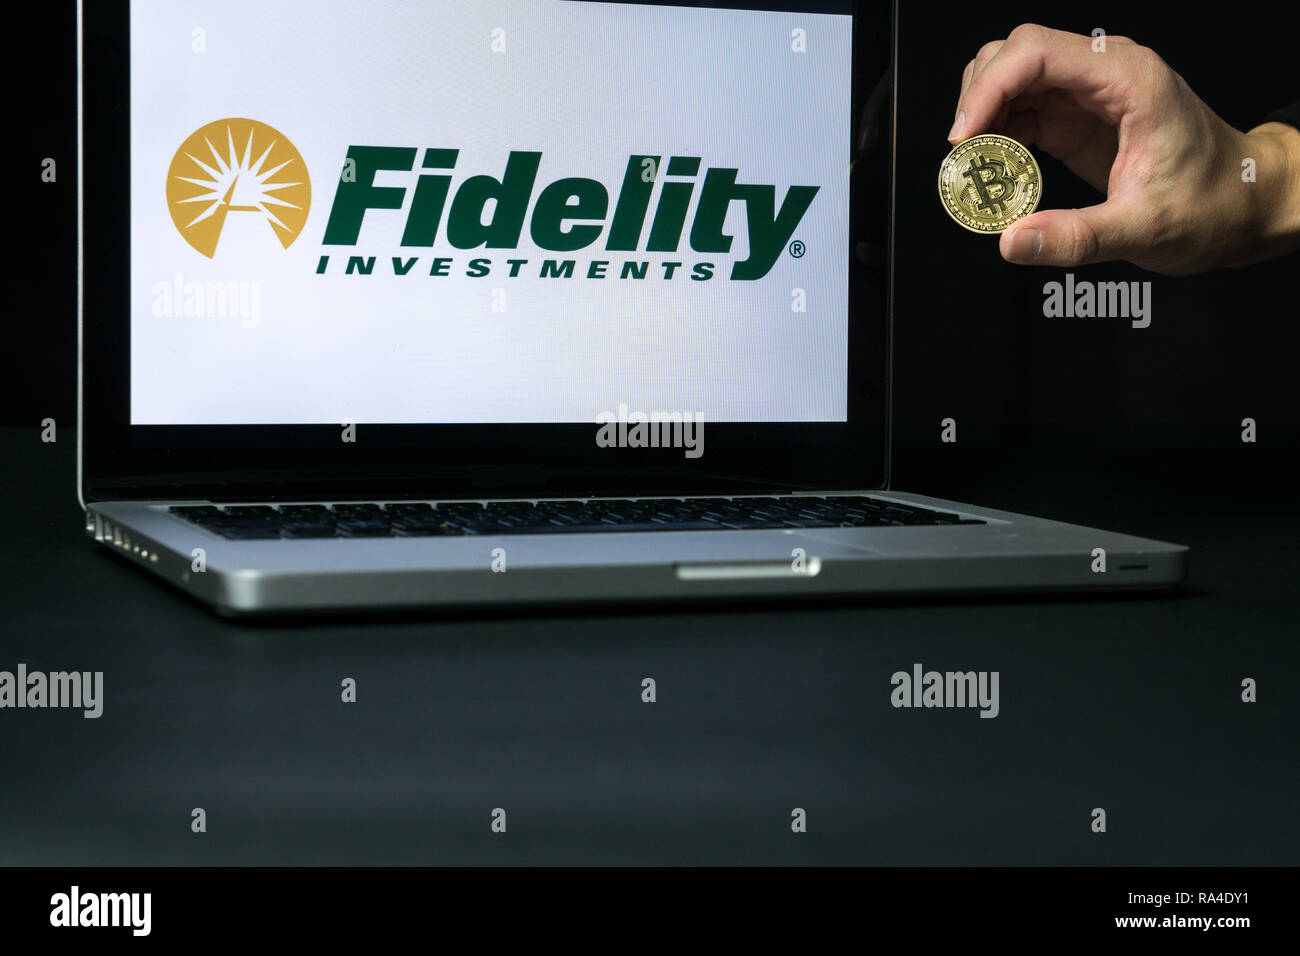 Bitcoin coin with the Fidelity logo on a laptop screen, Slovenia - December 23th, 2018 - Stock Image